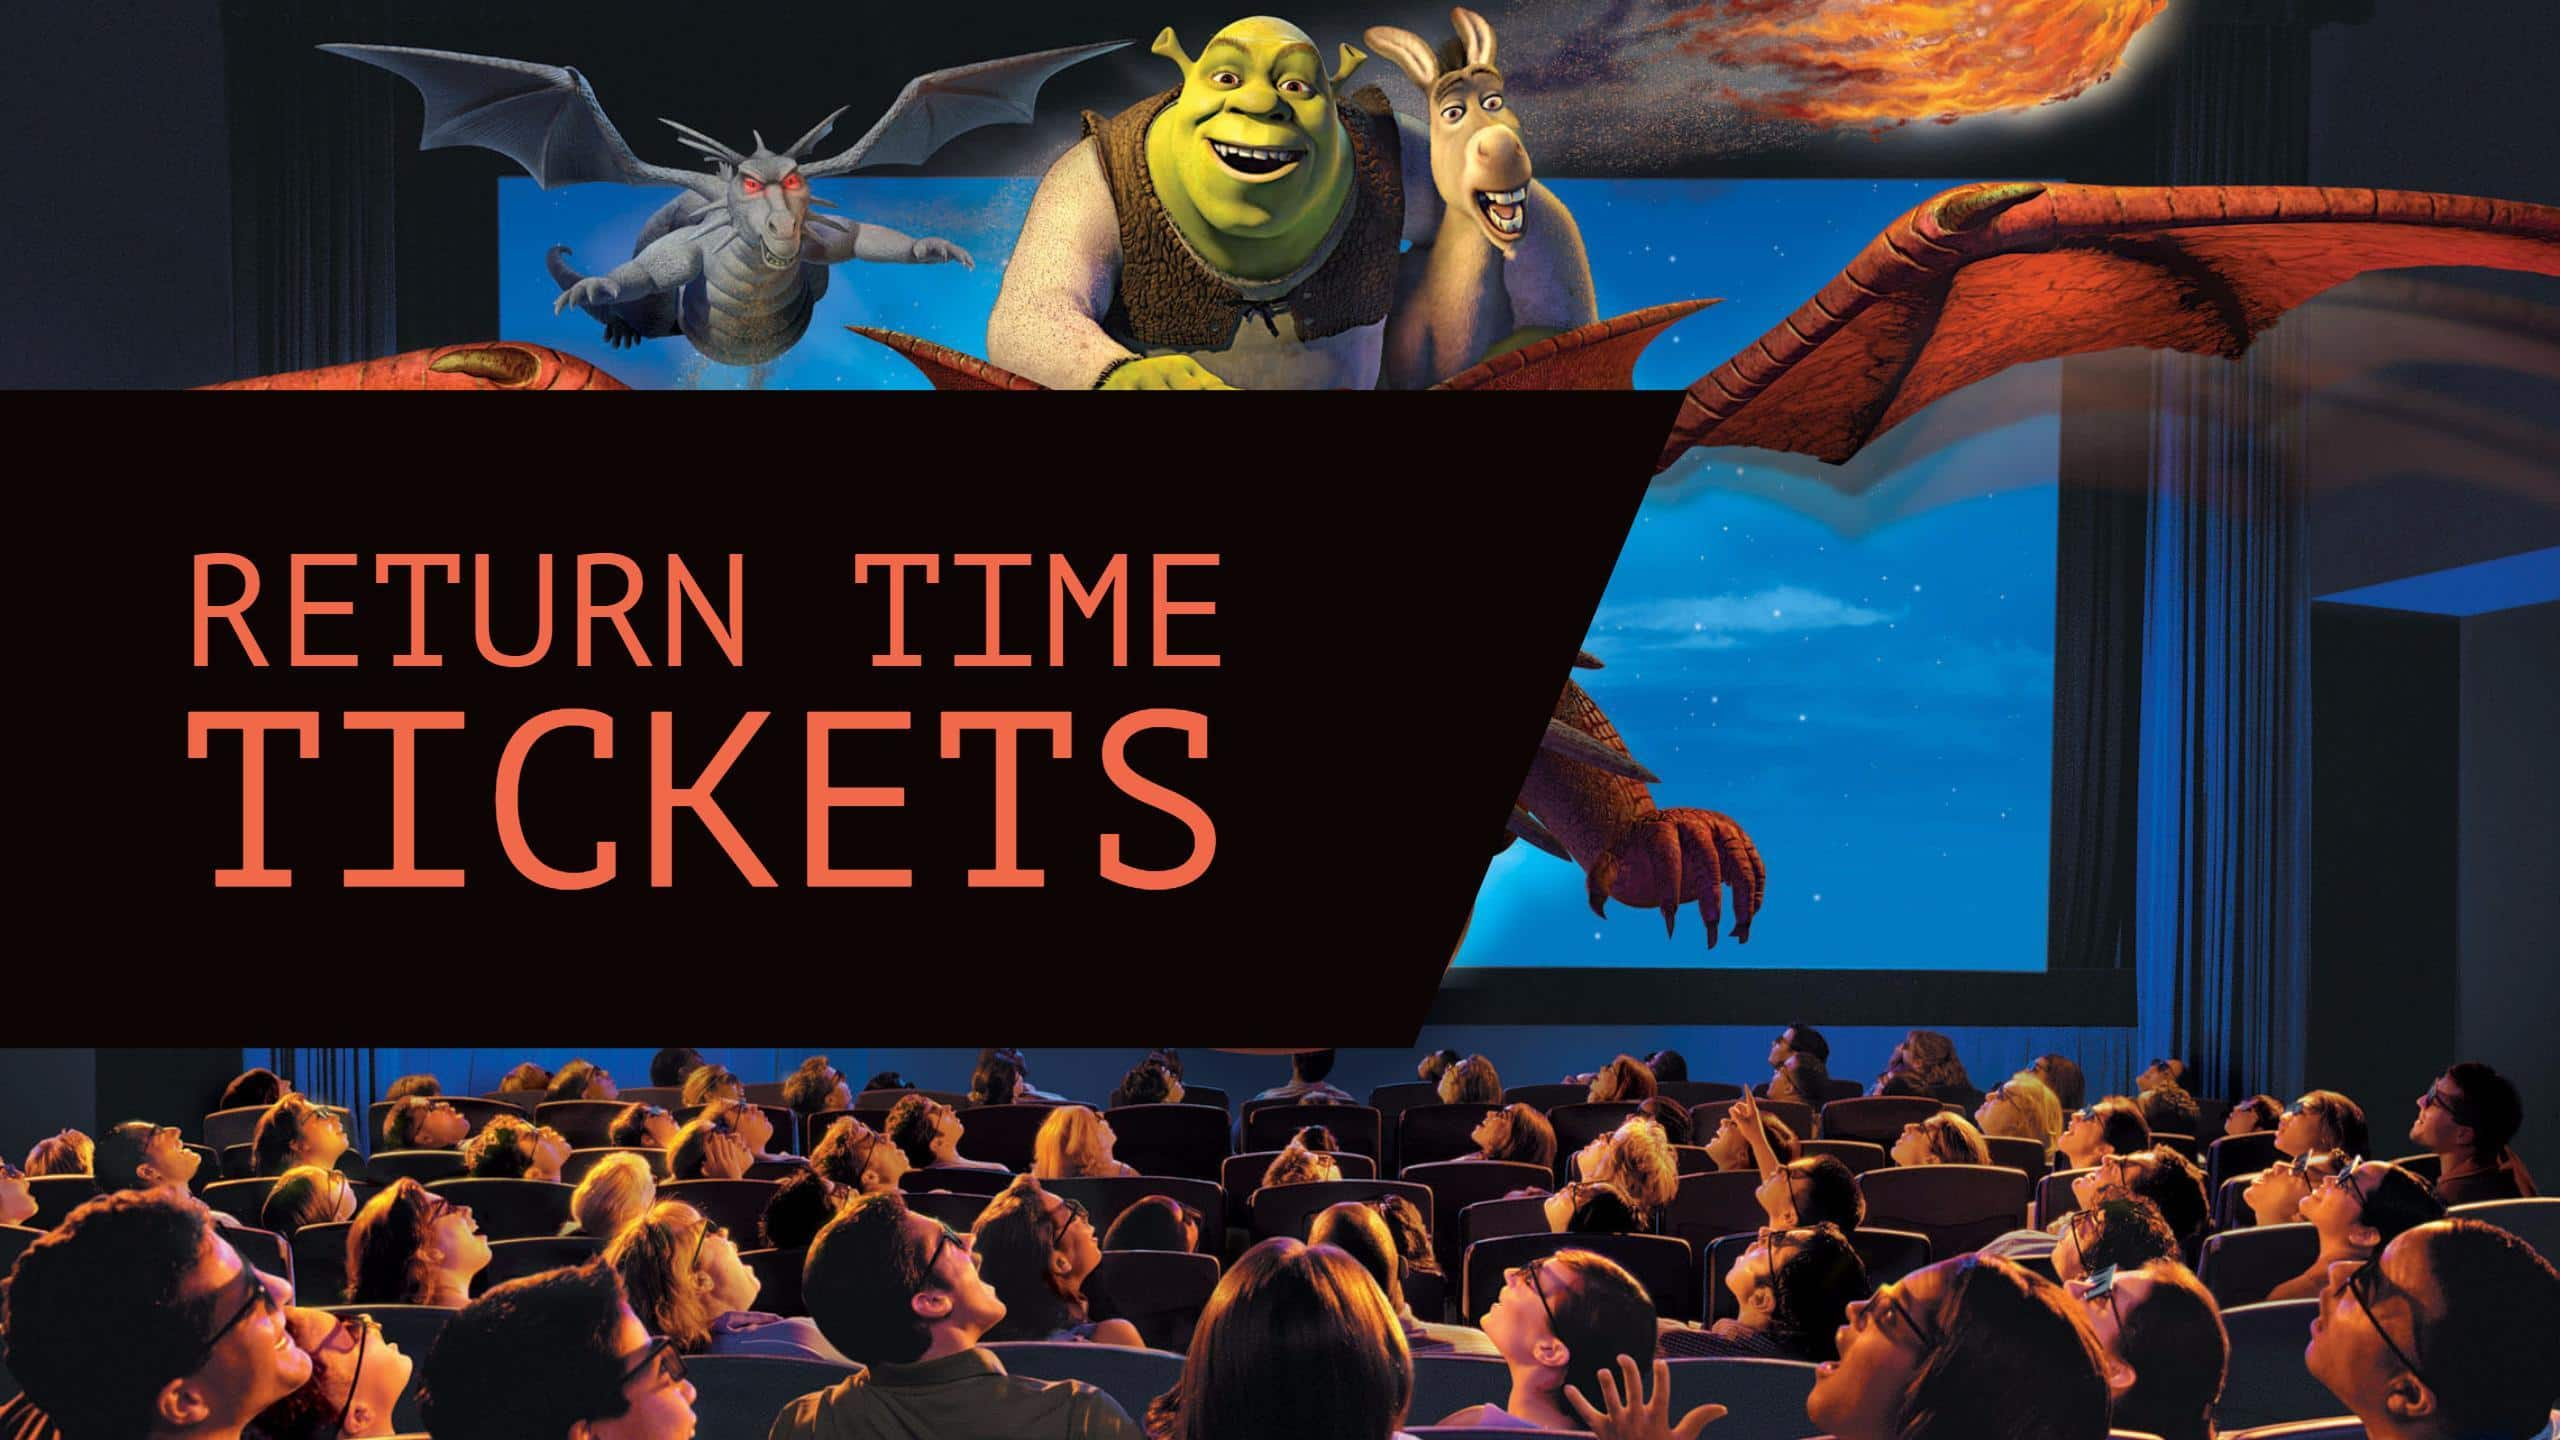 Universal Orlando begins testing return time tickets for select attractions